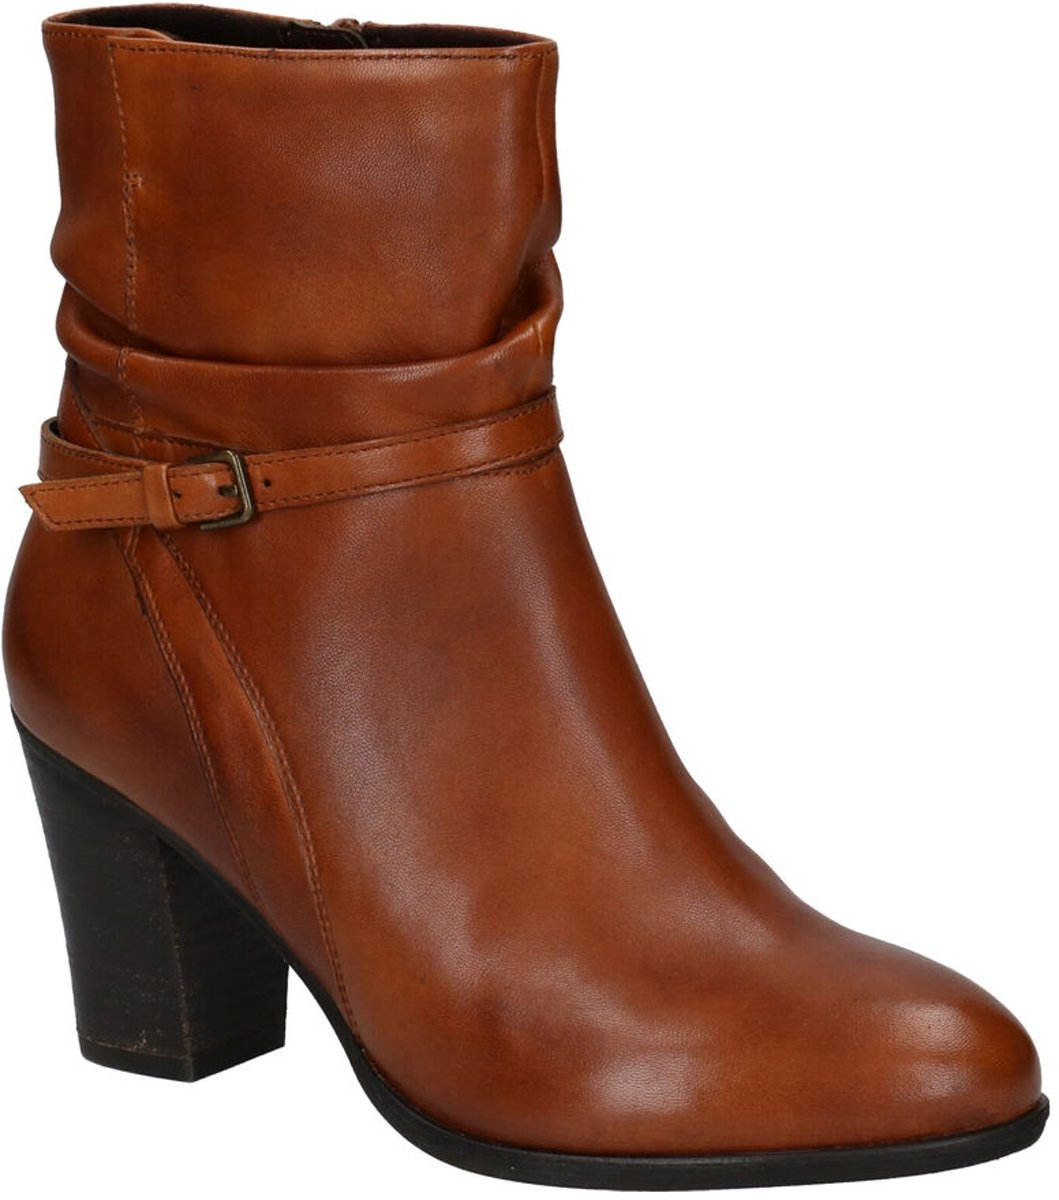 Leather ankle boots Janet & Janet Ecru size 38 EU in Leather